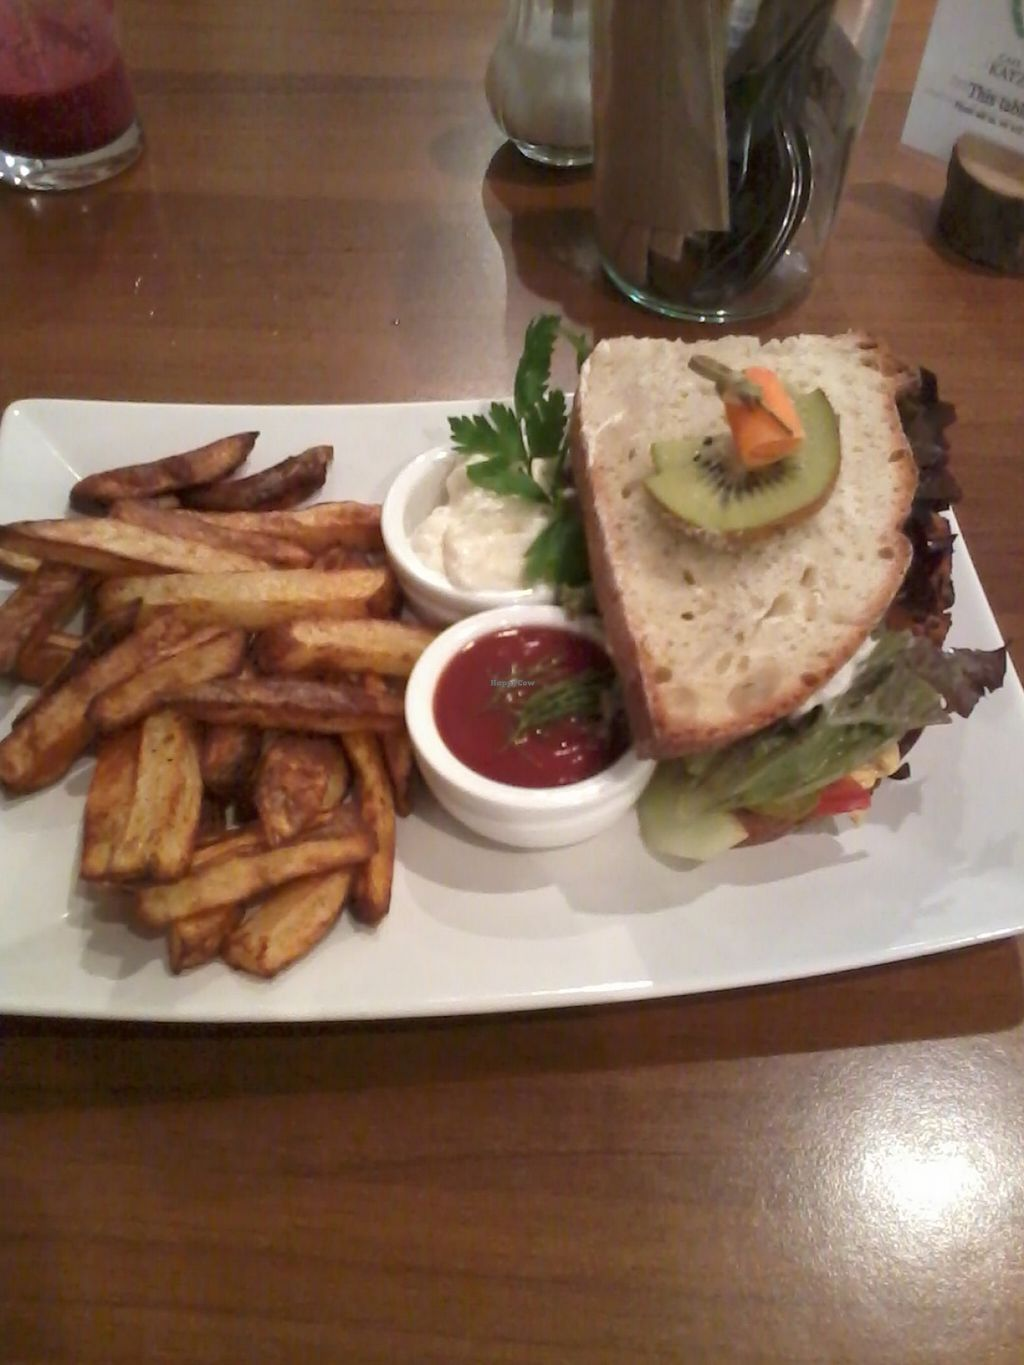 """Photo of Cafe Katzentempel  by <a href=""""/members/profile/deadpledge"""">deadpledge</a> <br/>Bean burger and chips with tomato ketchup and sour cream dip <br/> July 26, 2016  - <a href='/contact/abuse/image/38530/162461'>Report</a>"""